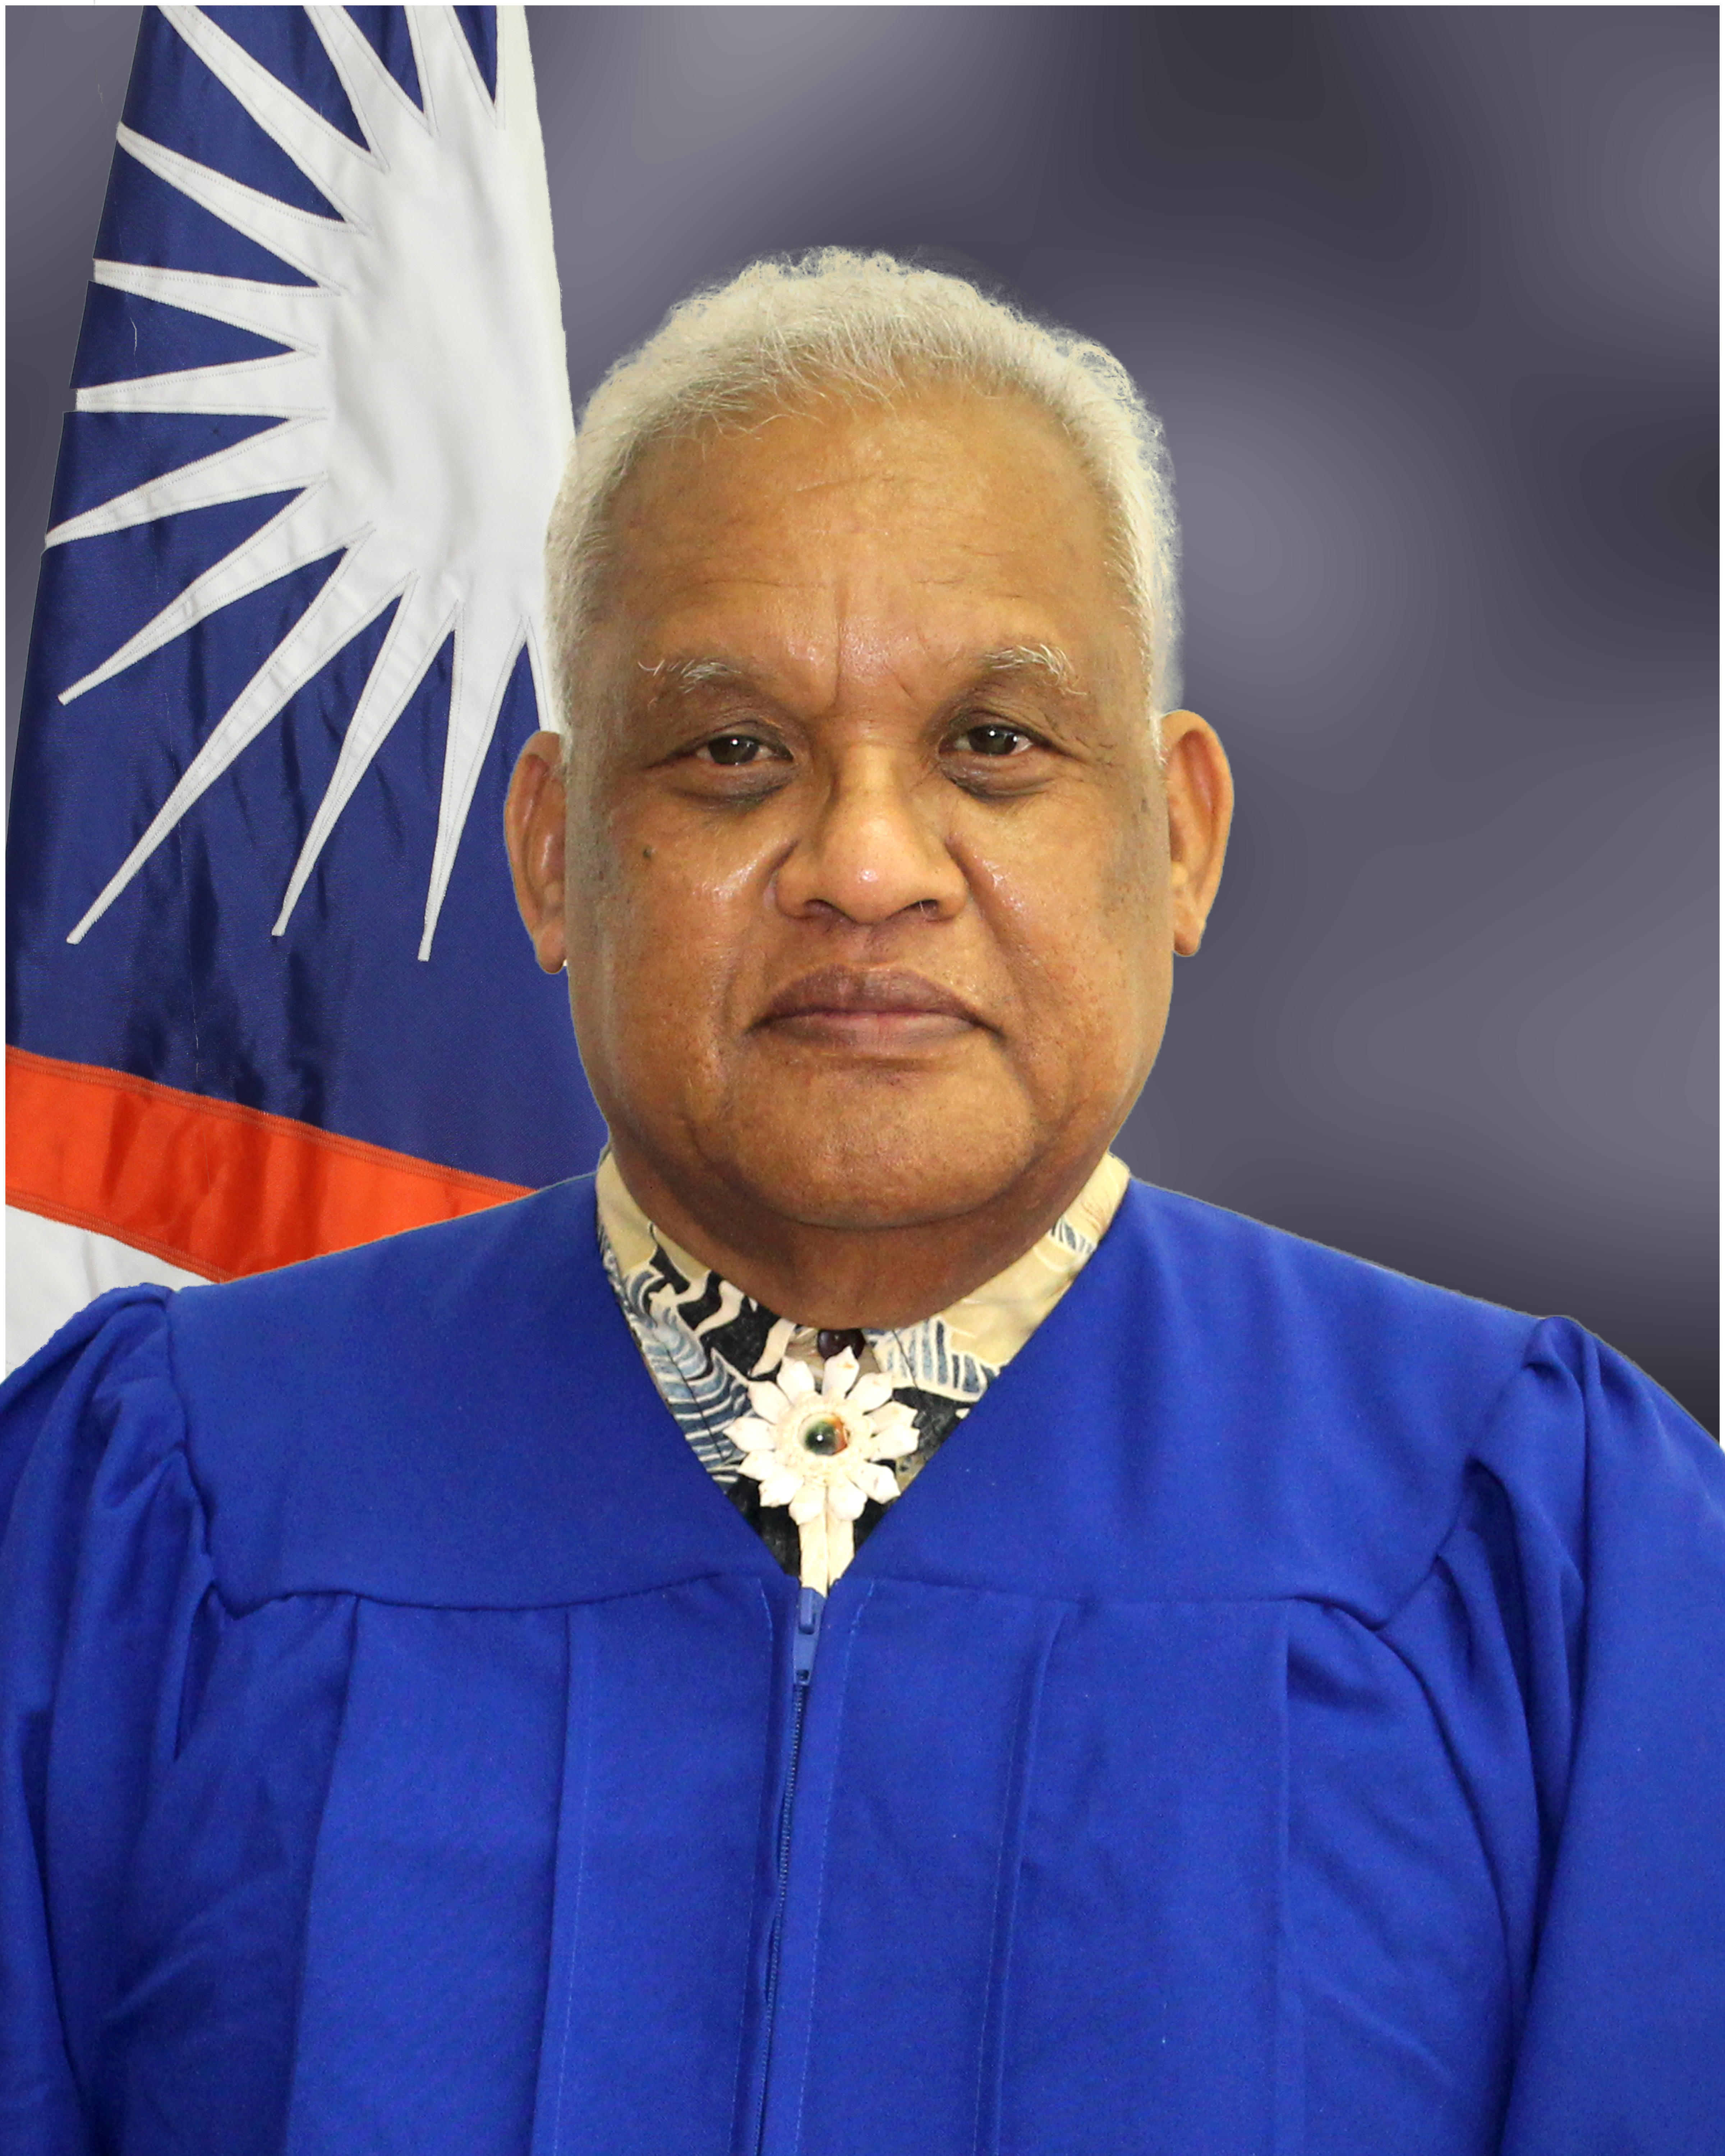 HIGH COURT ASSOCIATE JUSTICE WITTEN T. PHILIPPO